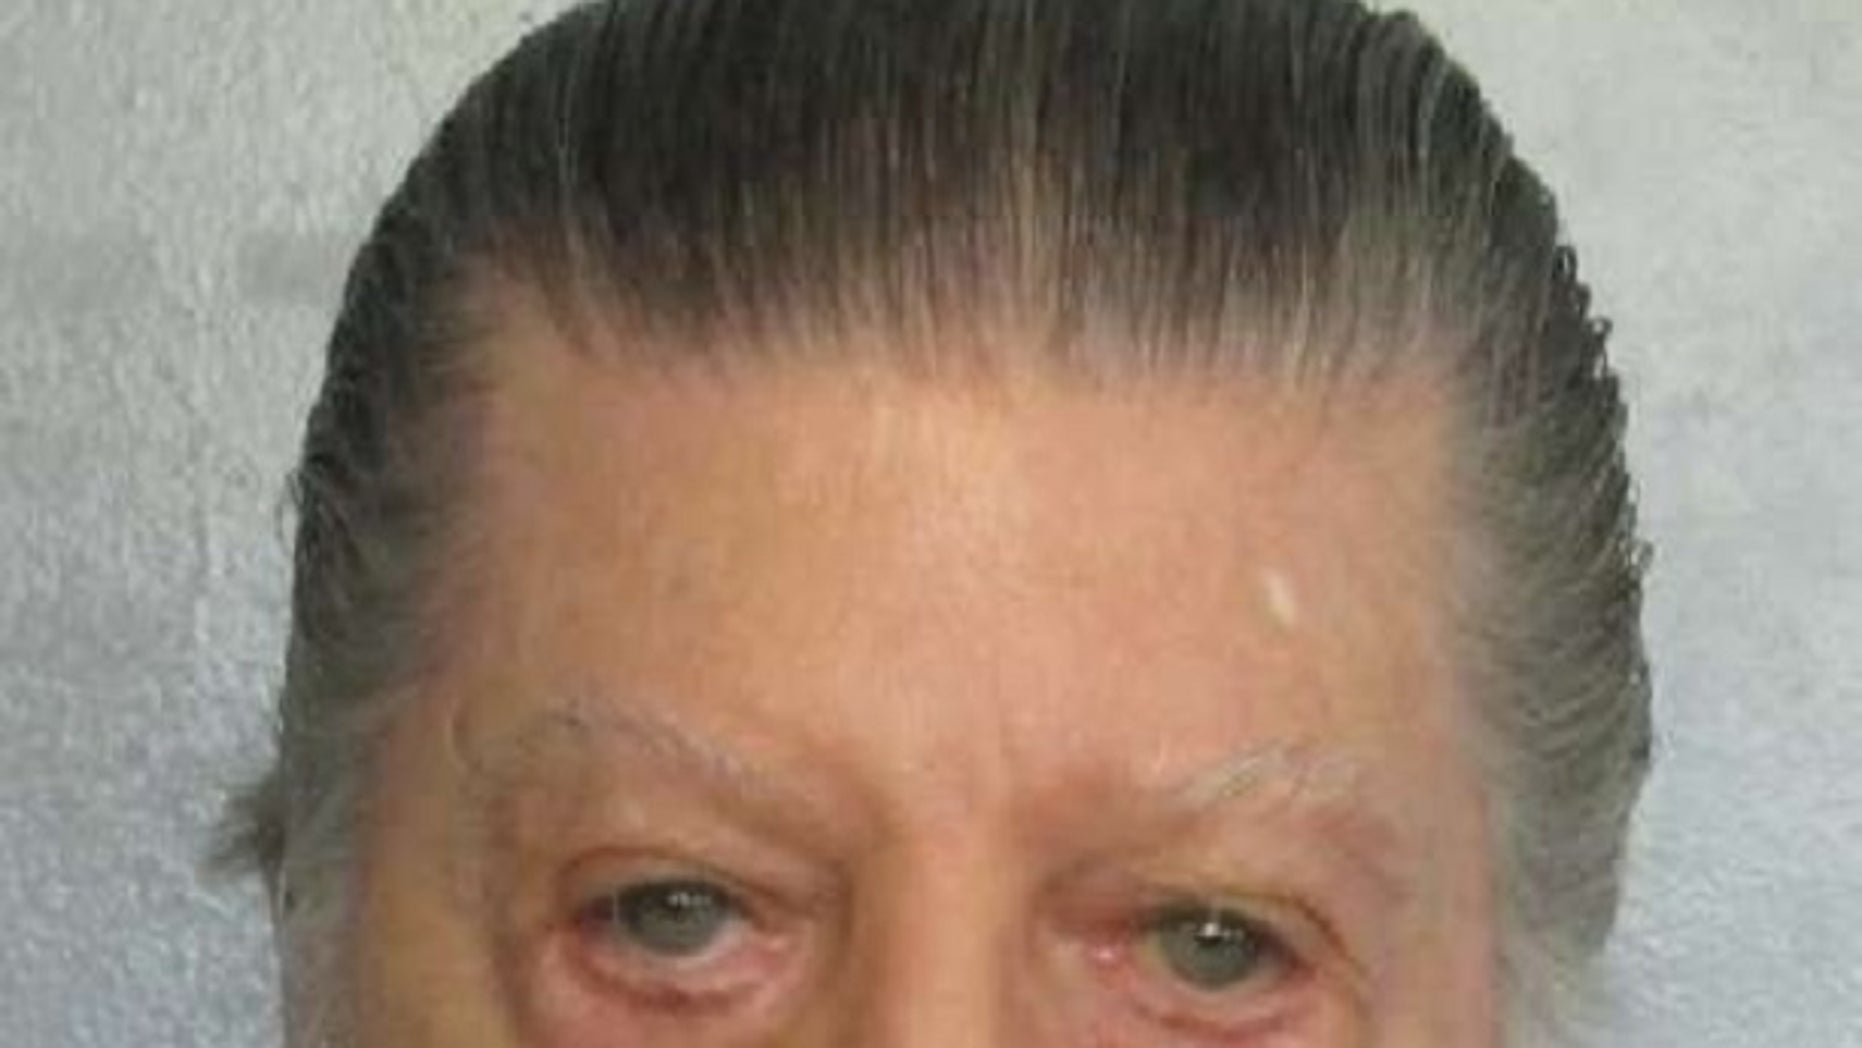 Walter Leroy Moody, 82, is to be executed April 19, 2018, the Alabama attorney general's office said Friday.